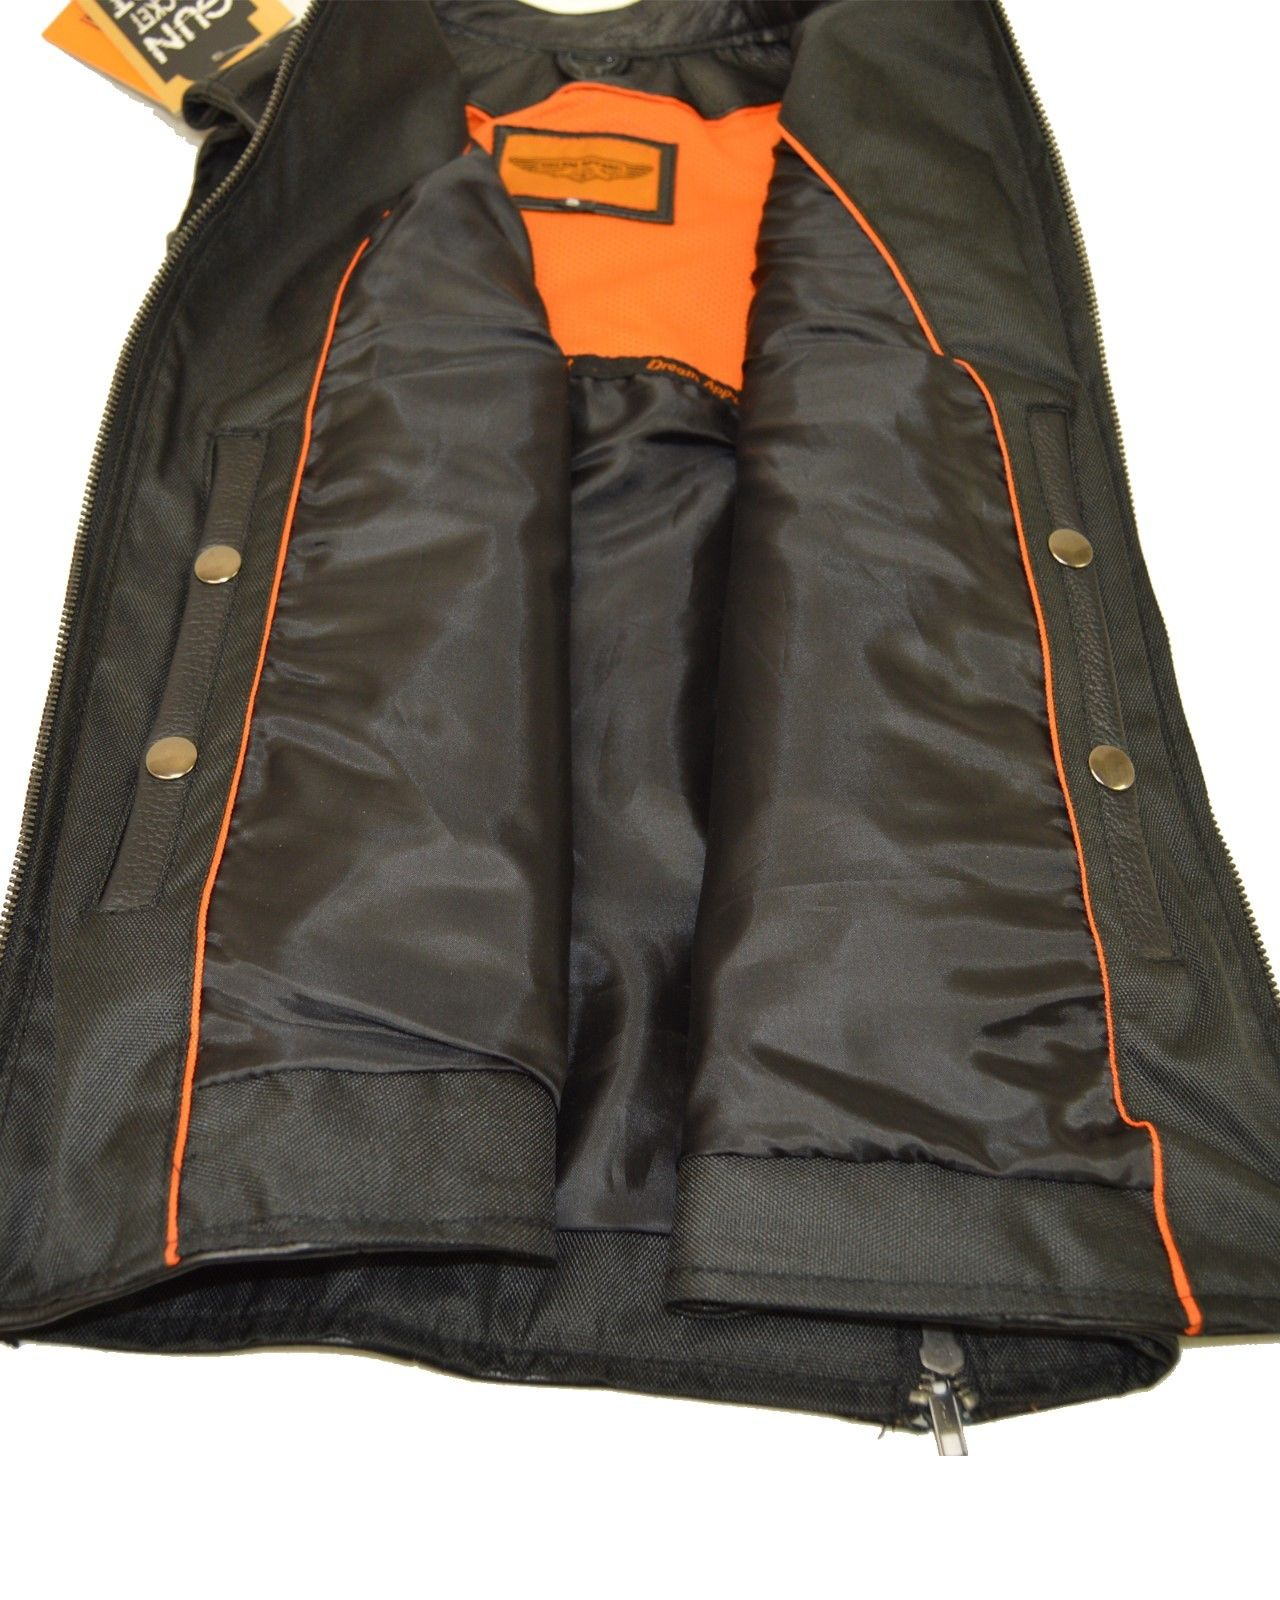 Leather Motorcycle Jackets for Ladies inside